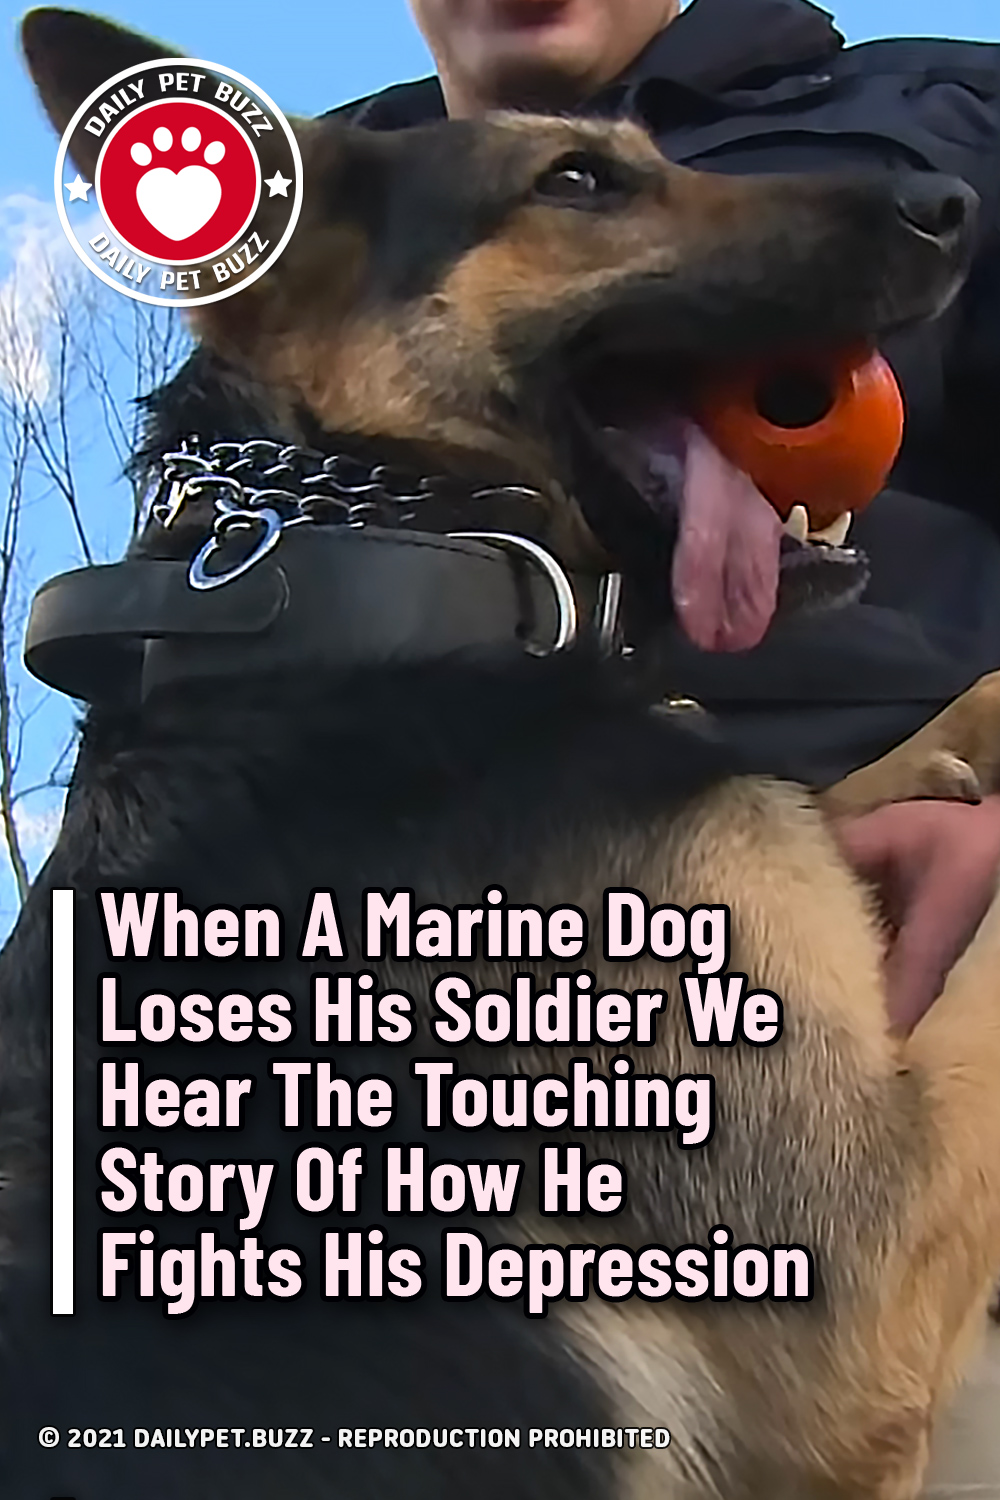 When A Marine Dog Loses His Soldier We Hear The Touching Story Of How He Fights His Depression